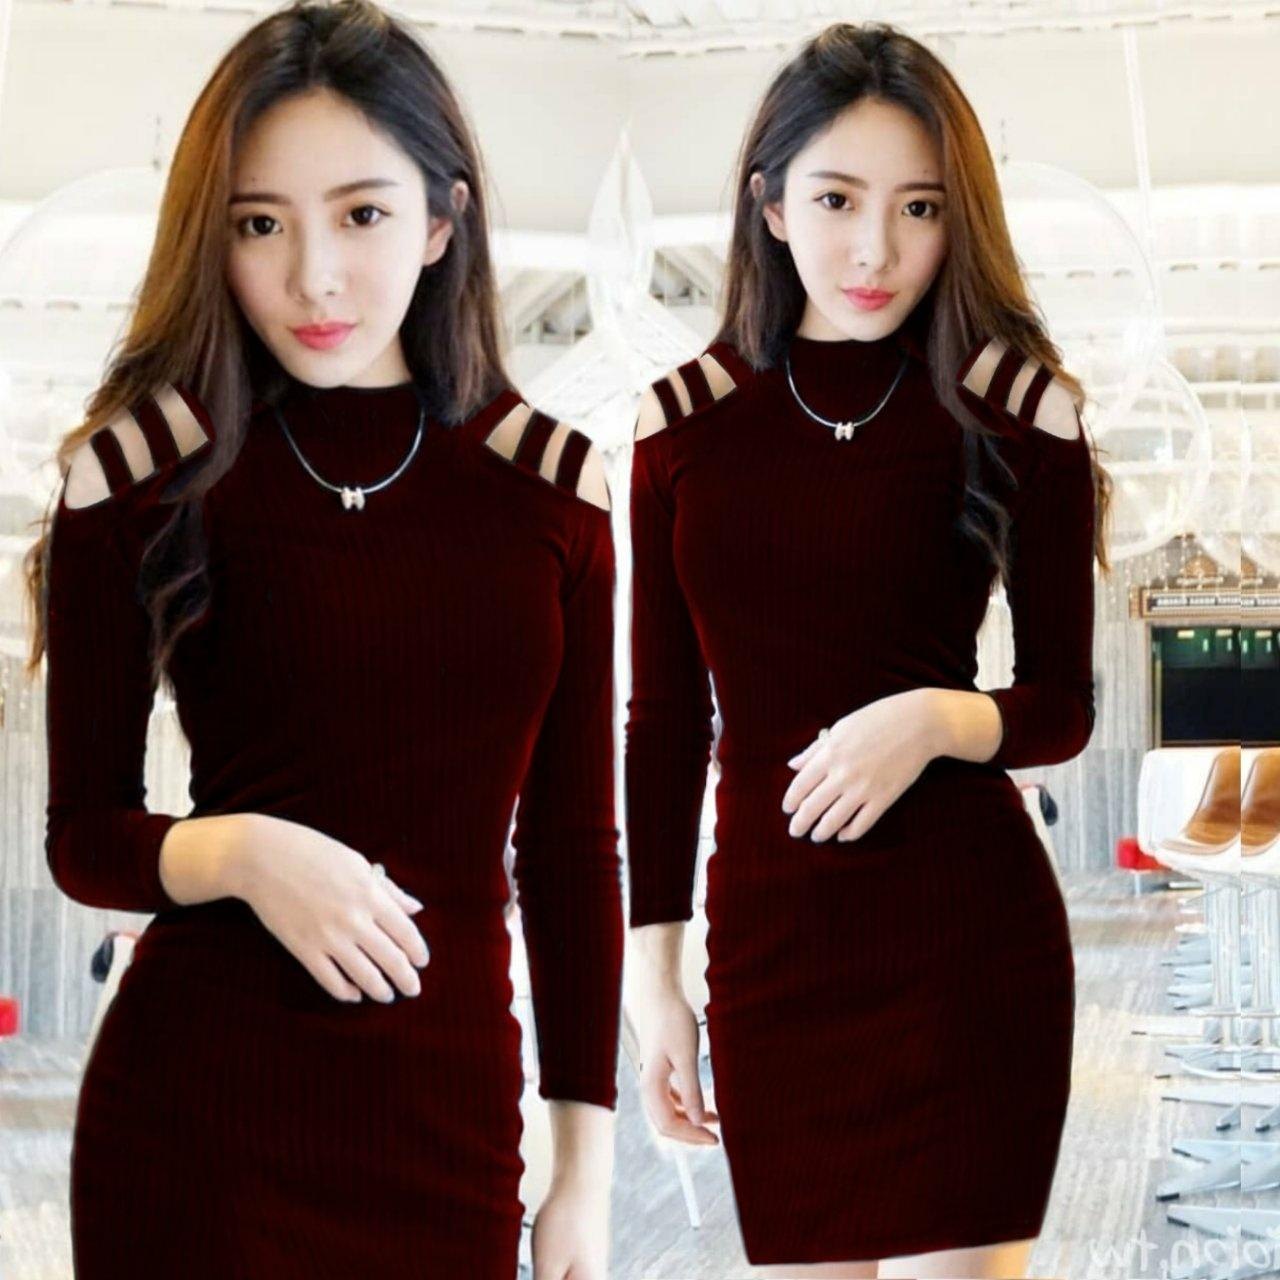 Hoziro - Baju / Atasan / Blouse Rajut / Dress Rajut / Dress Midi / Dress Kekinian / Dress Korea / Dress Terbaru / Dress Wanita Pinny Bahan Rajut